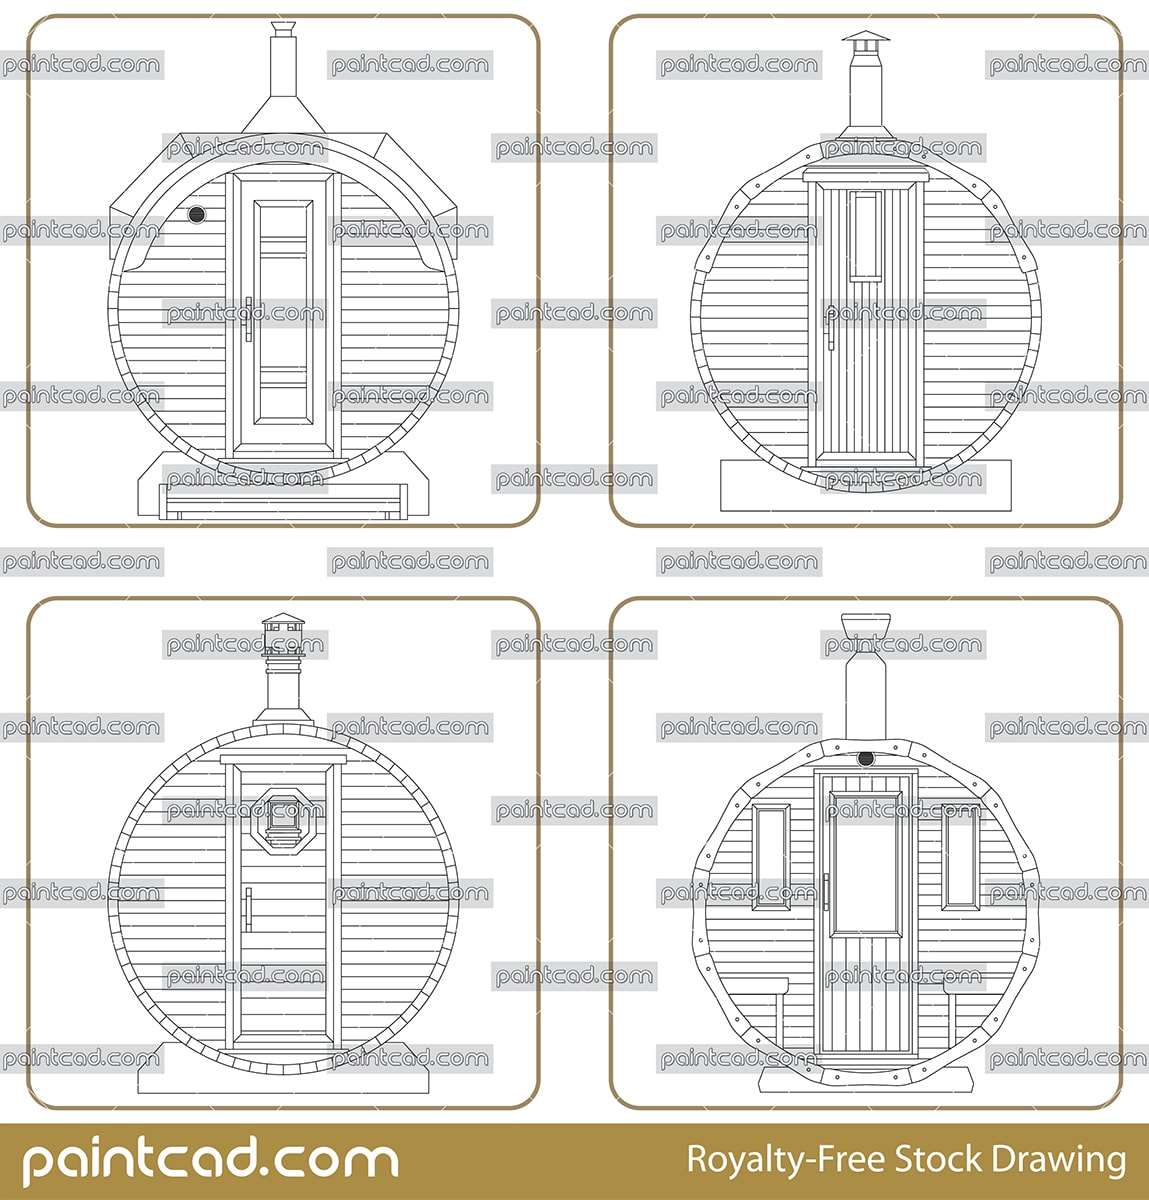 Vector drawing of outdoor barrel sauna with metal chimney - vector illustration